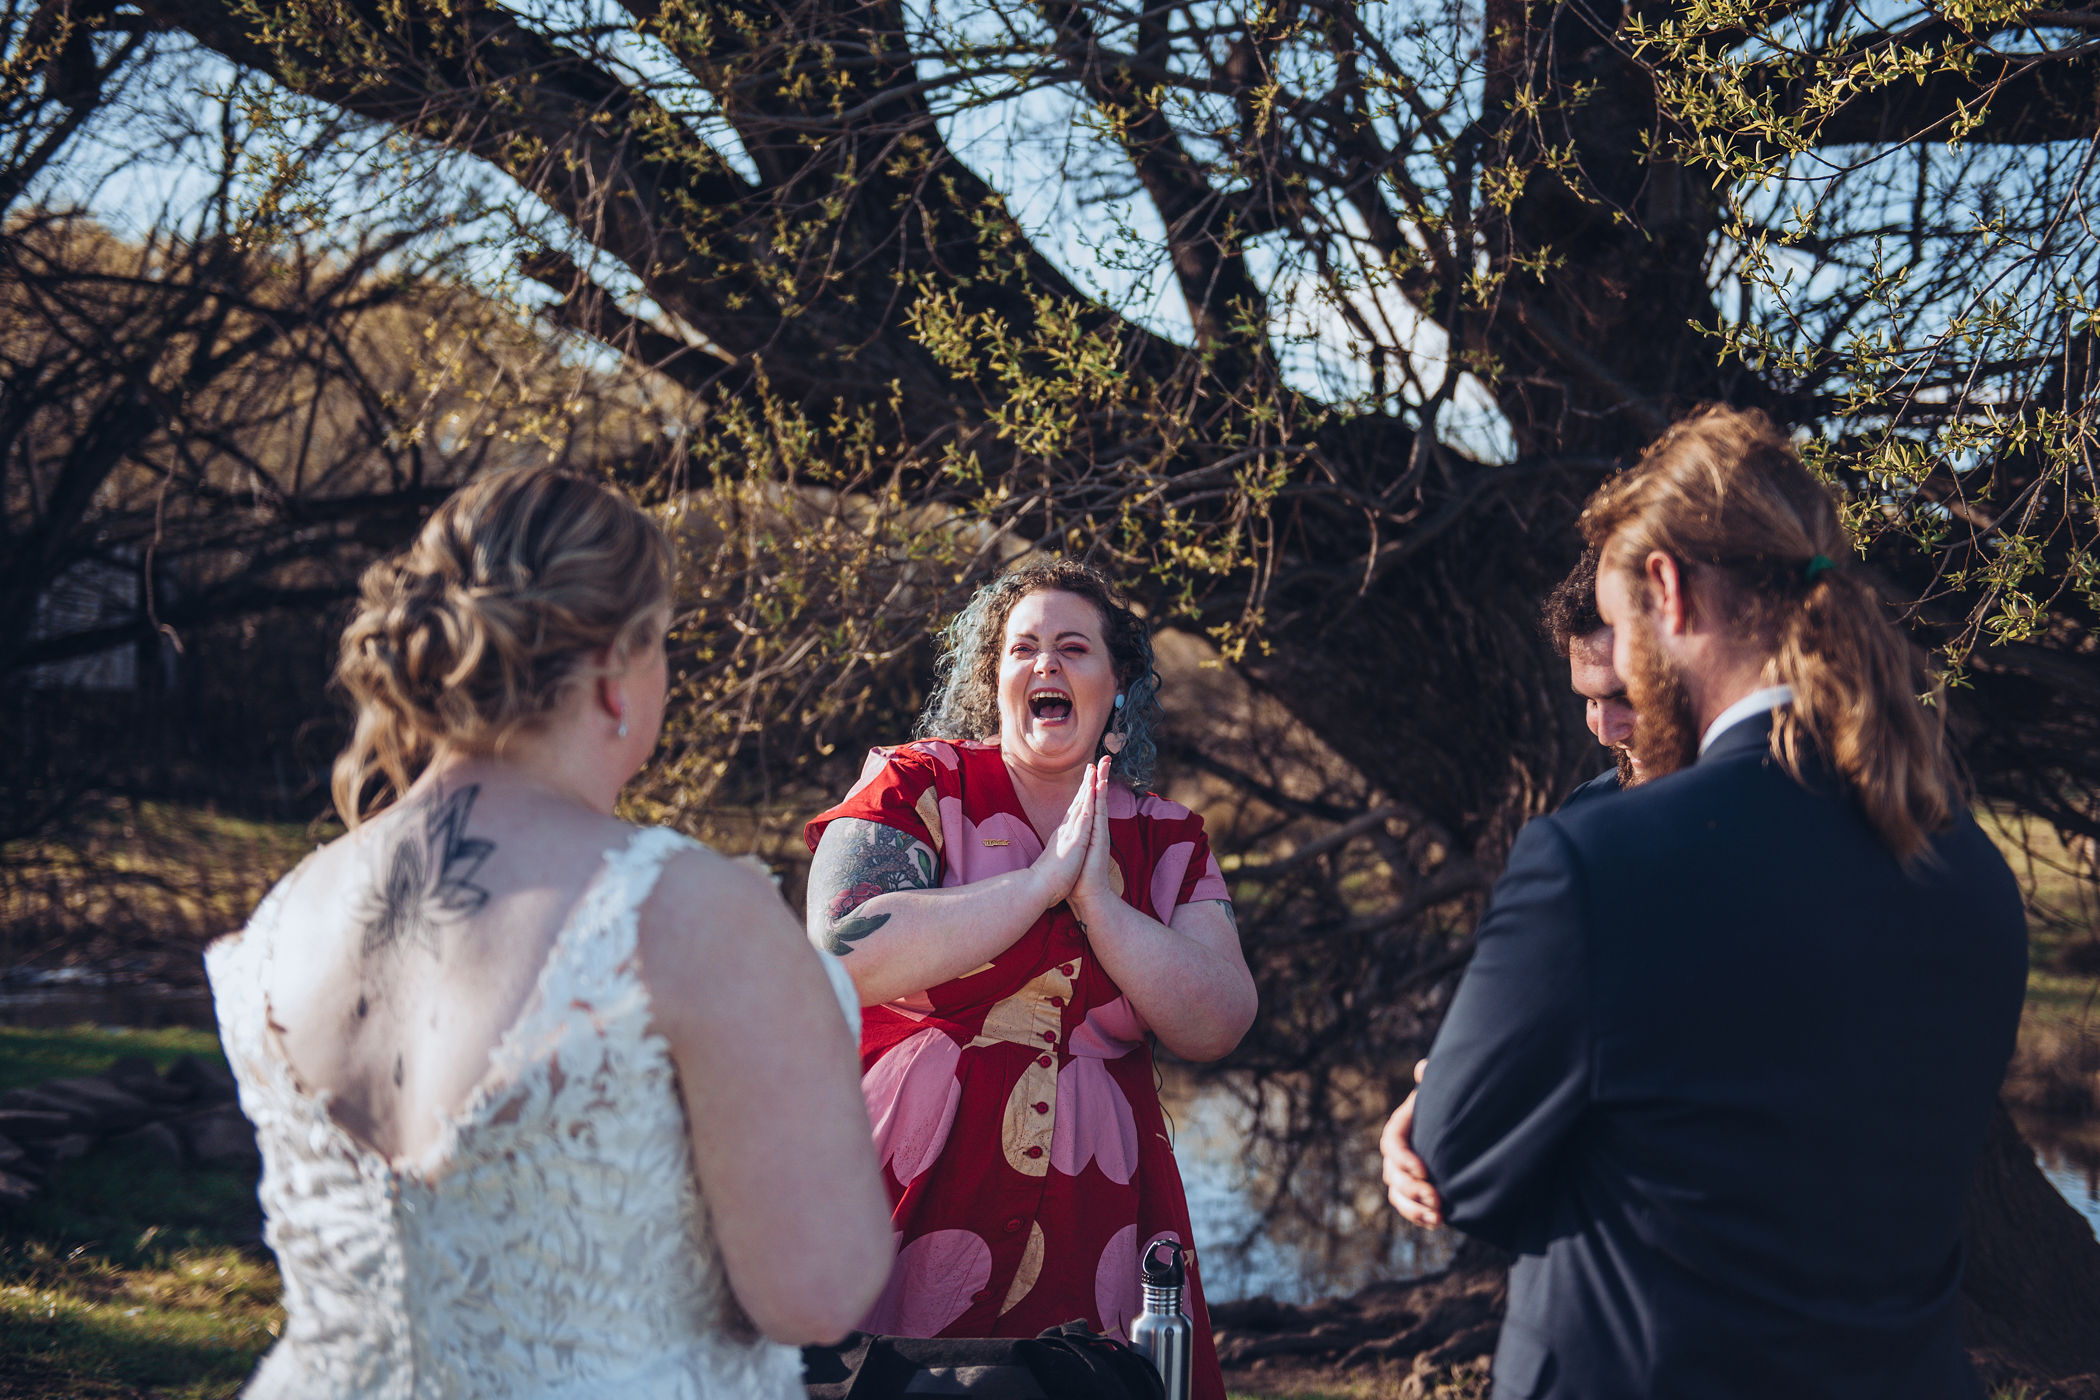 a candid moment caught on camera of the colourful celebrant cackling with glee post-ceremony at the signing table, hands clasped together